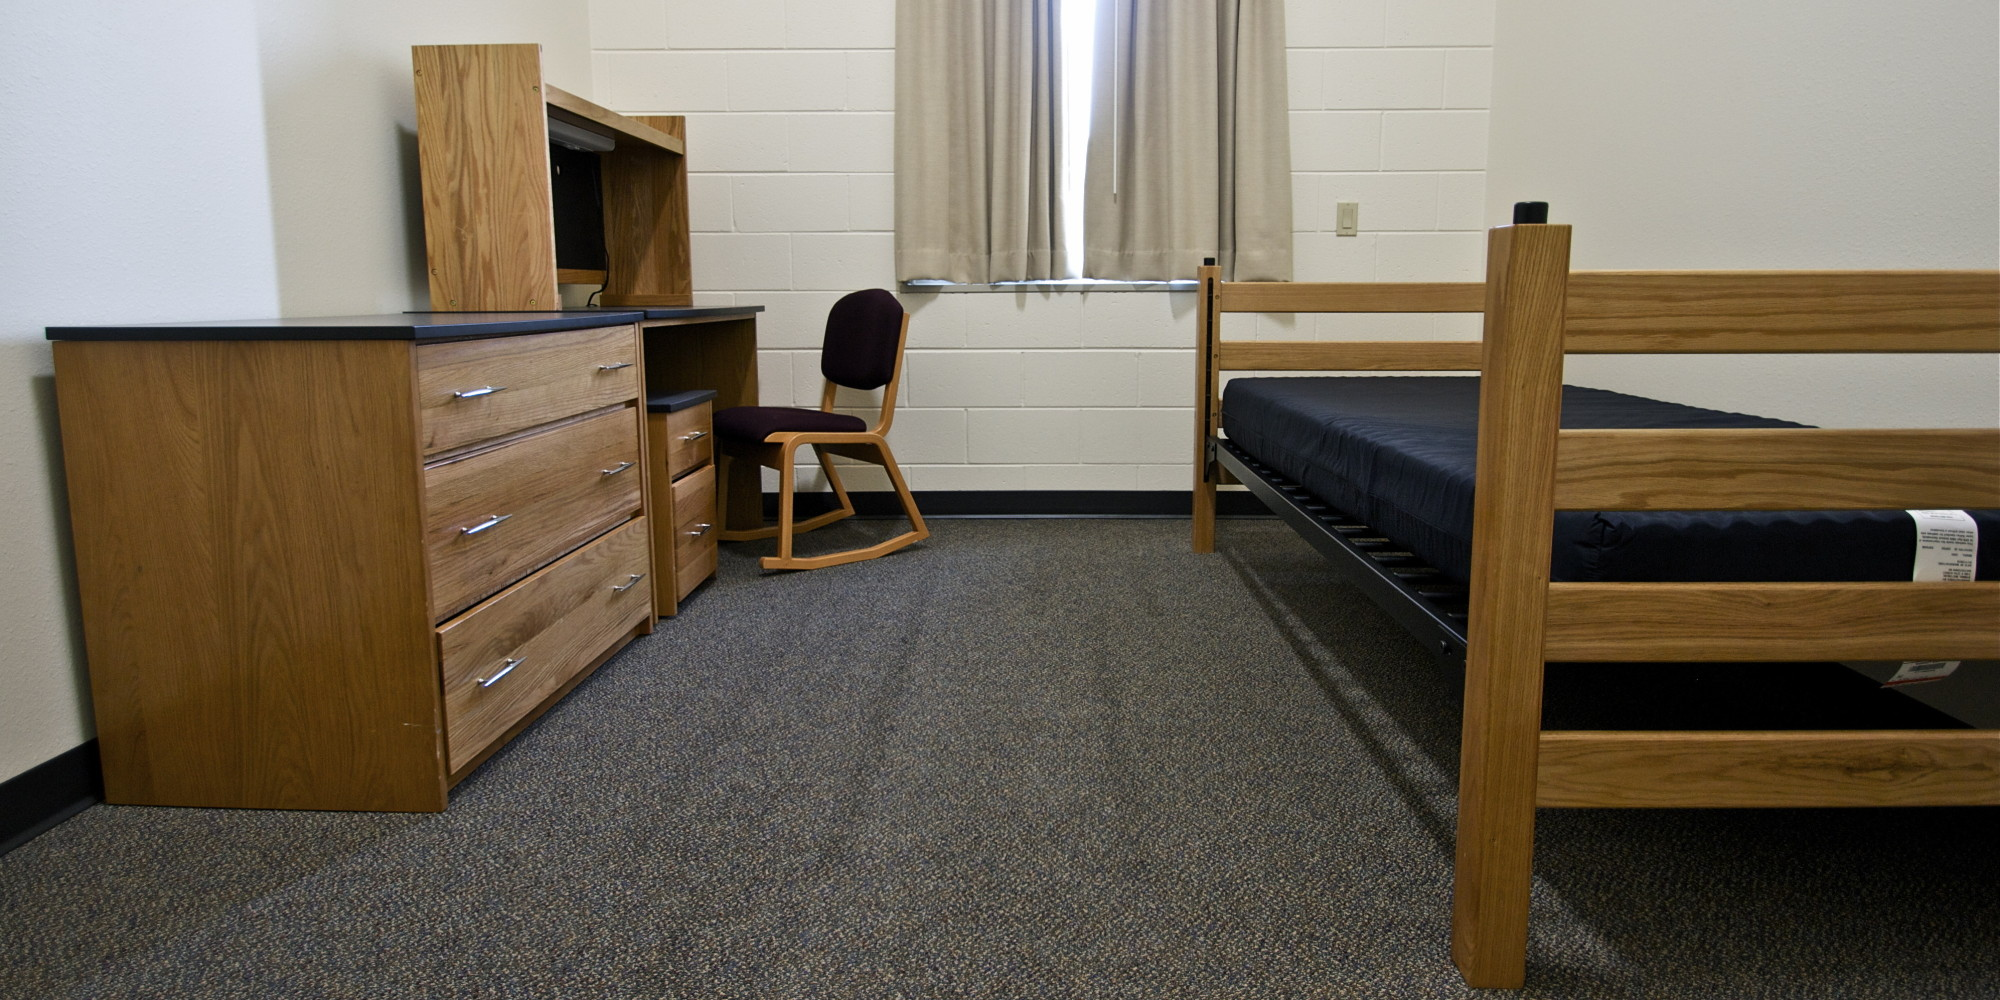 Top 10 Things You Will Need For College As A Freshman